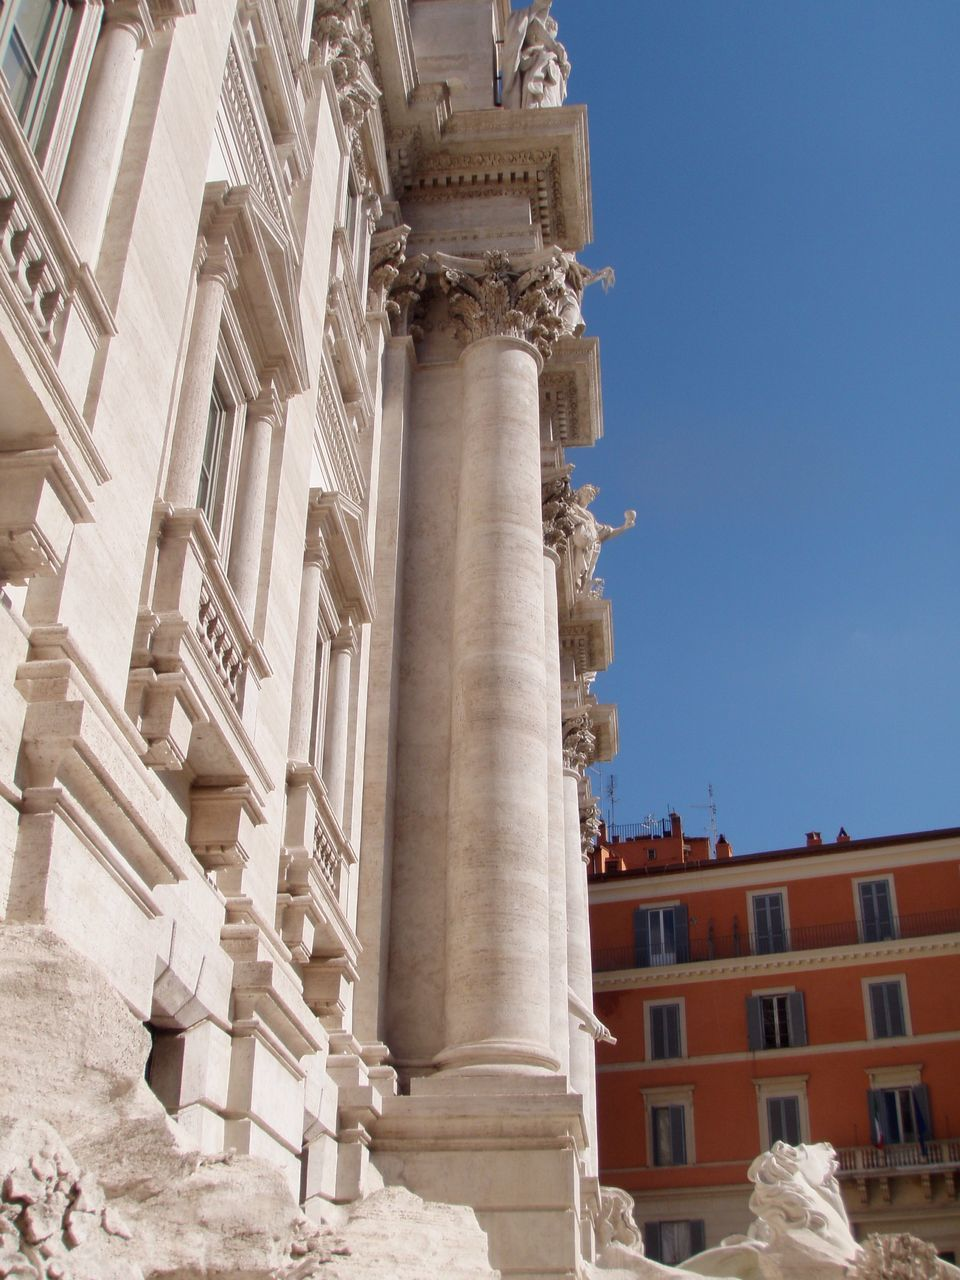 architecture, built structure, architectural column, building exterior, history, low angle view, outdoors, no people, day, city, sky